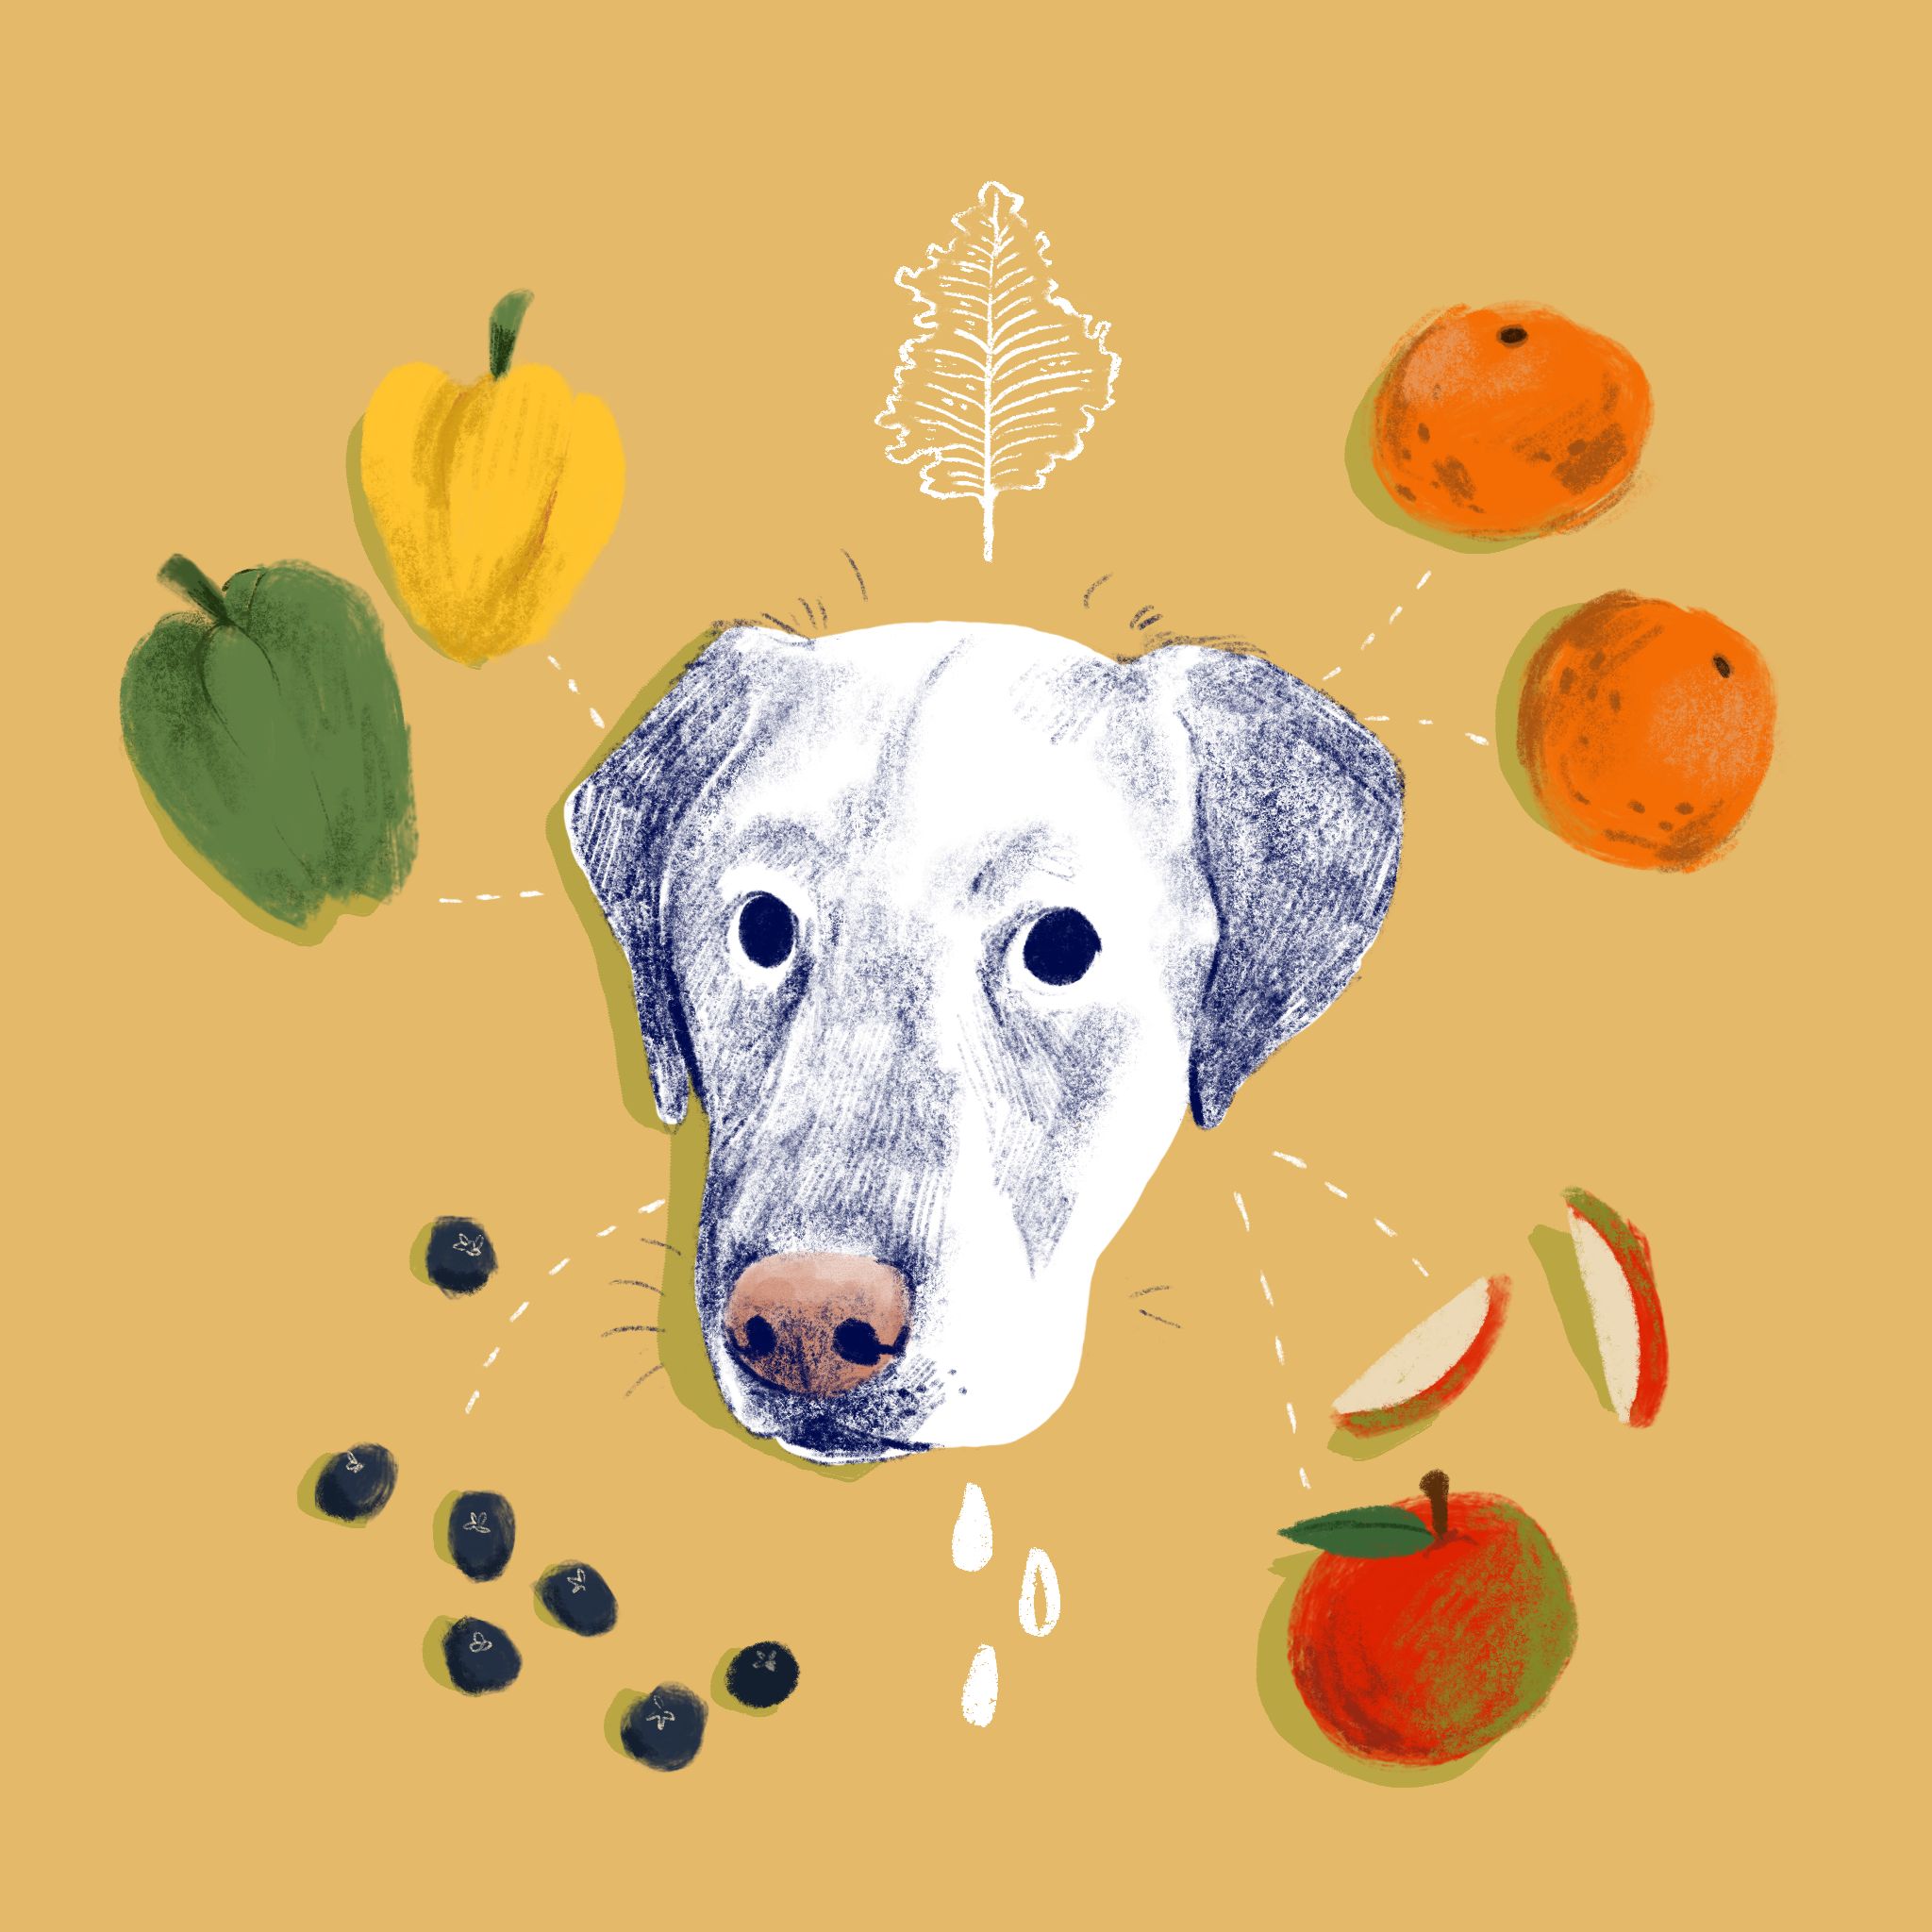 Blue Loves Produce // Digital Illustration, 2019